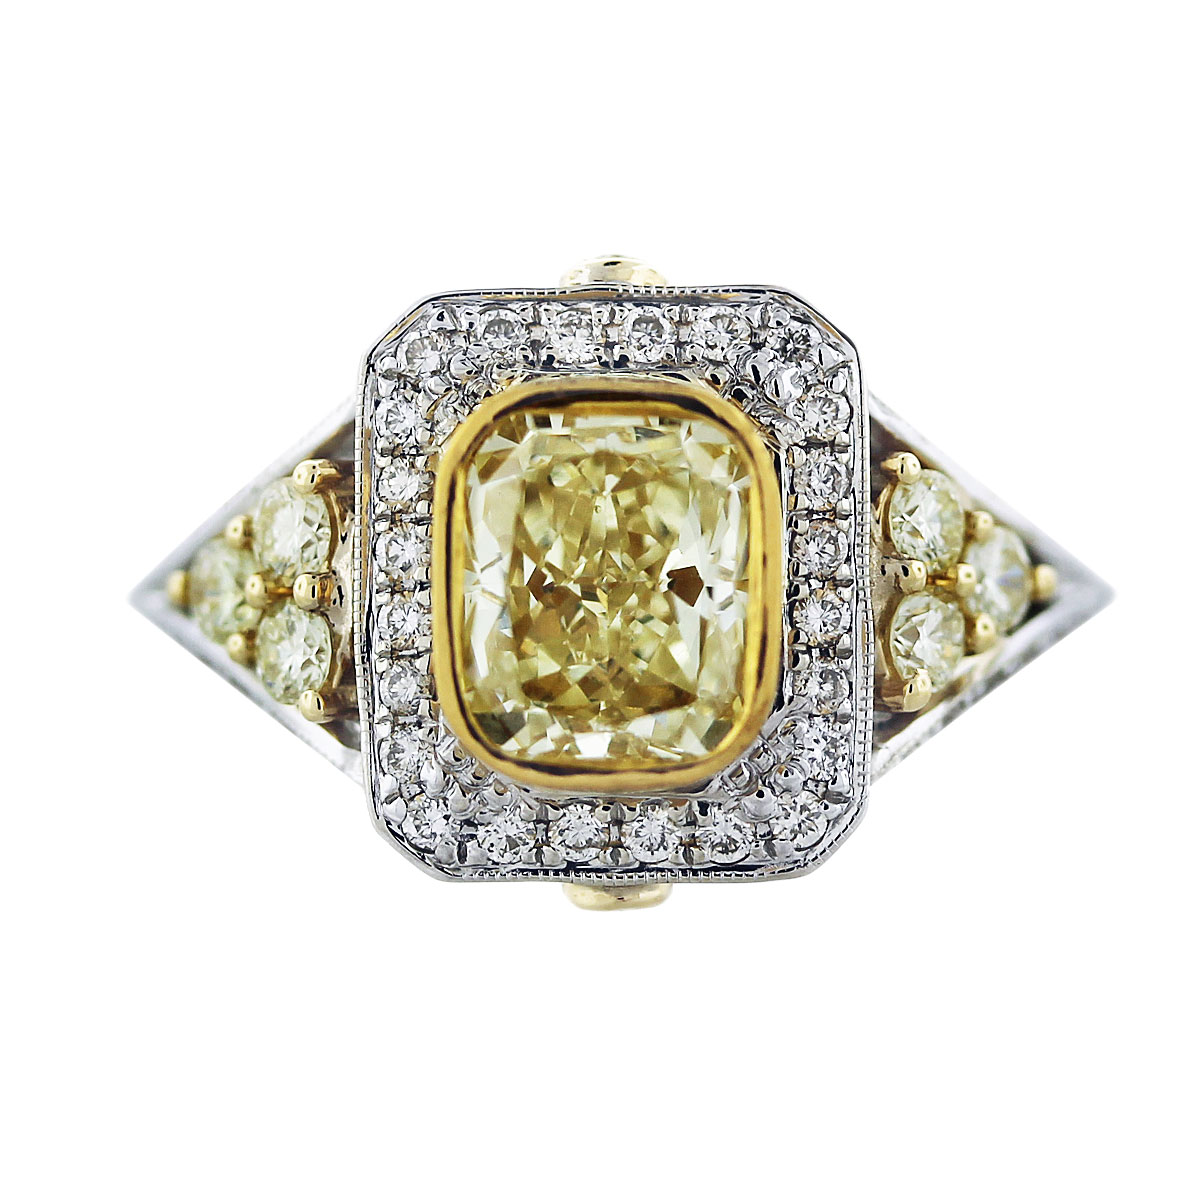 cushion cut fancy yellow diamond engagement ring 18k two tone gold. Black Bedroom Furniture Sets. Home Design Ideas